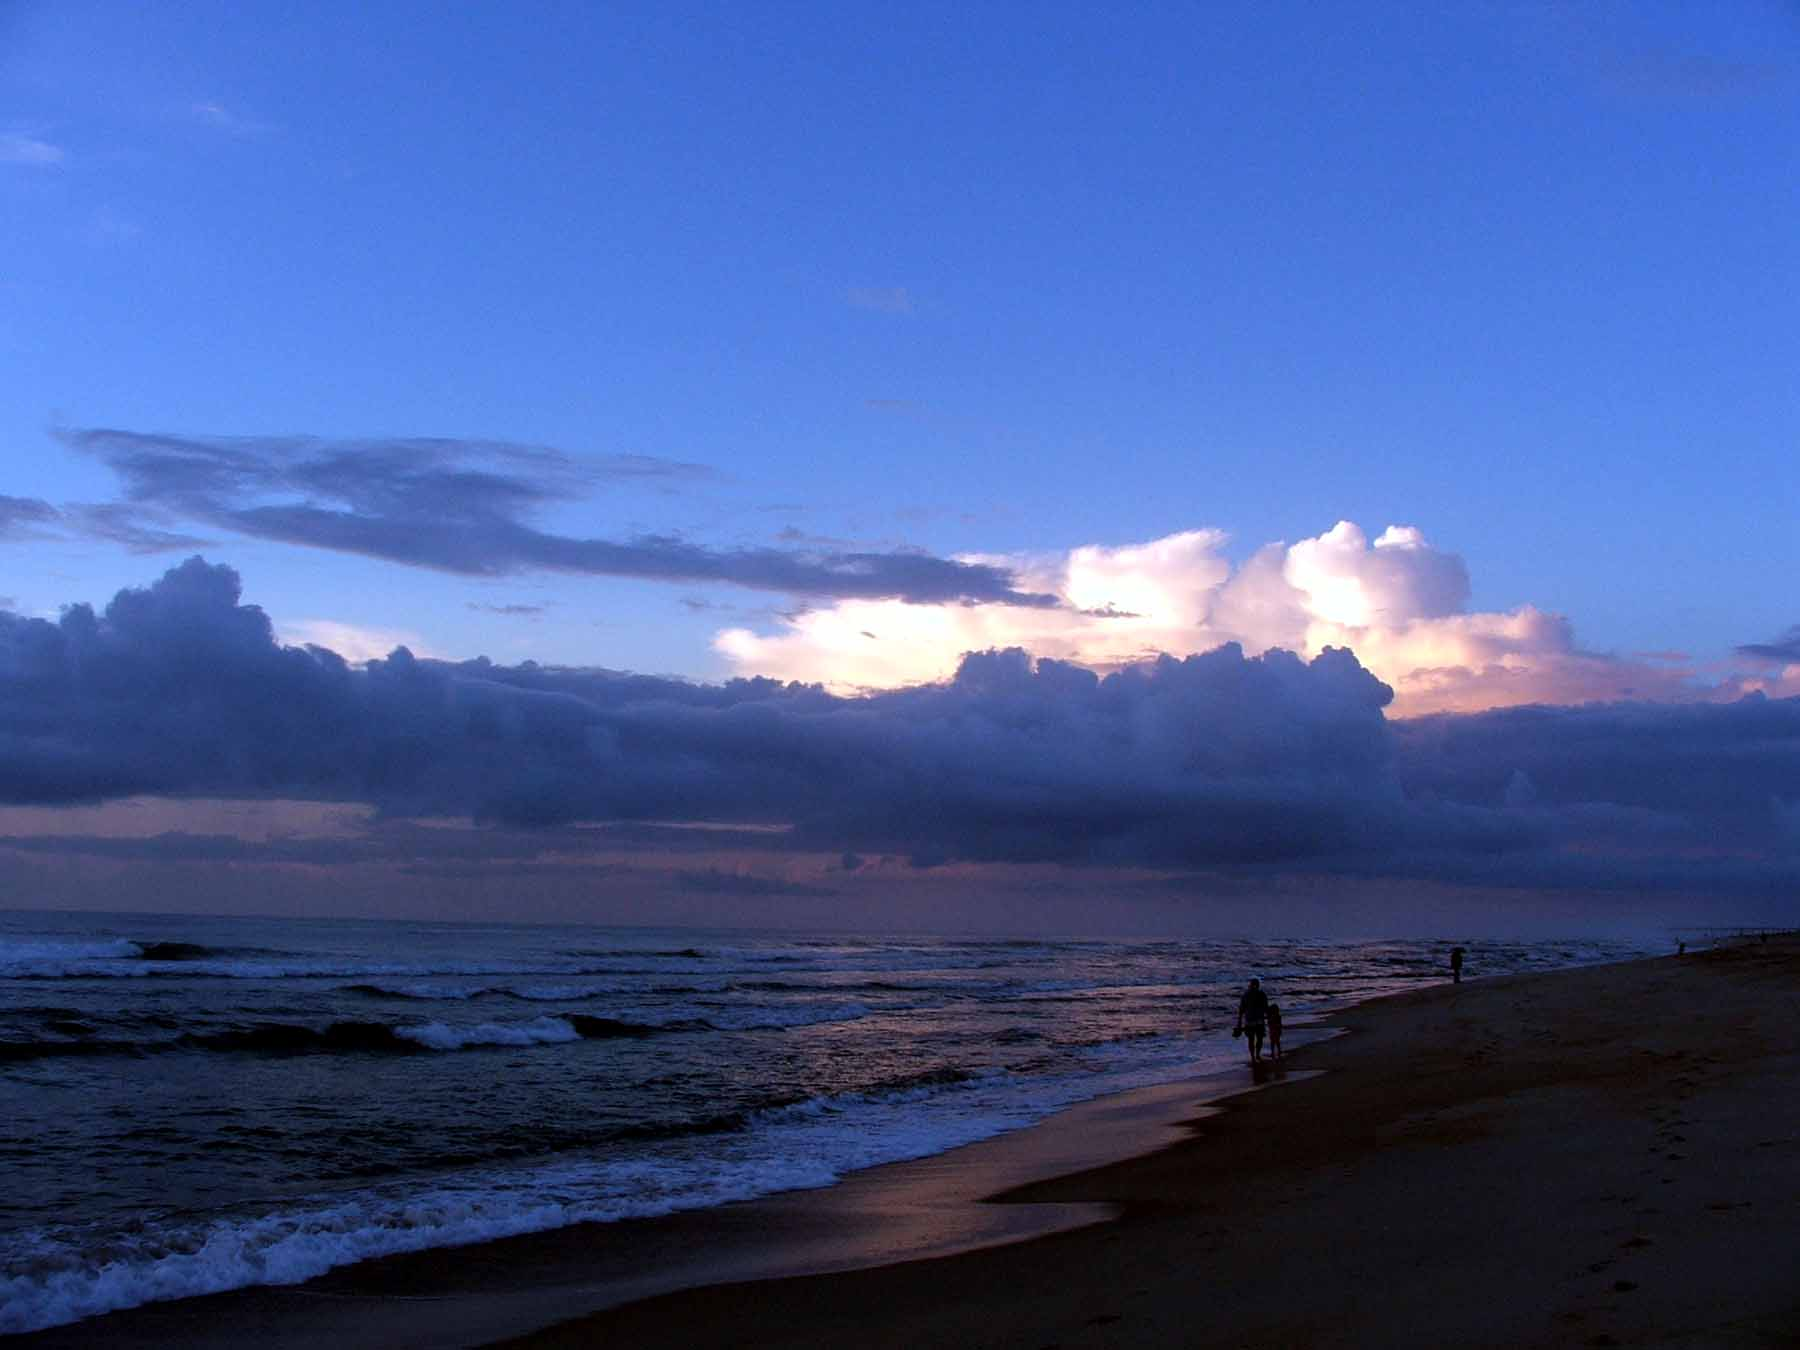 daybreak, Outer Banks, photo by Tammy Vitale